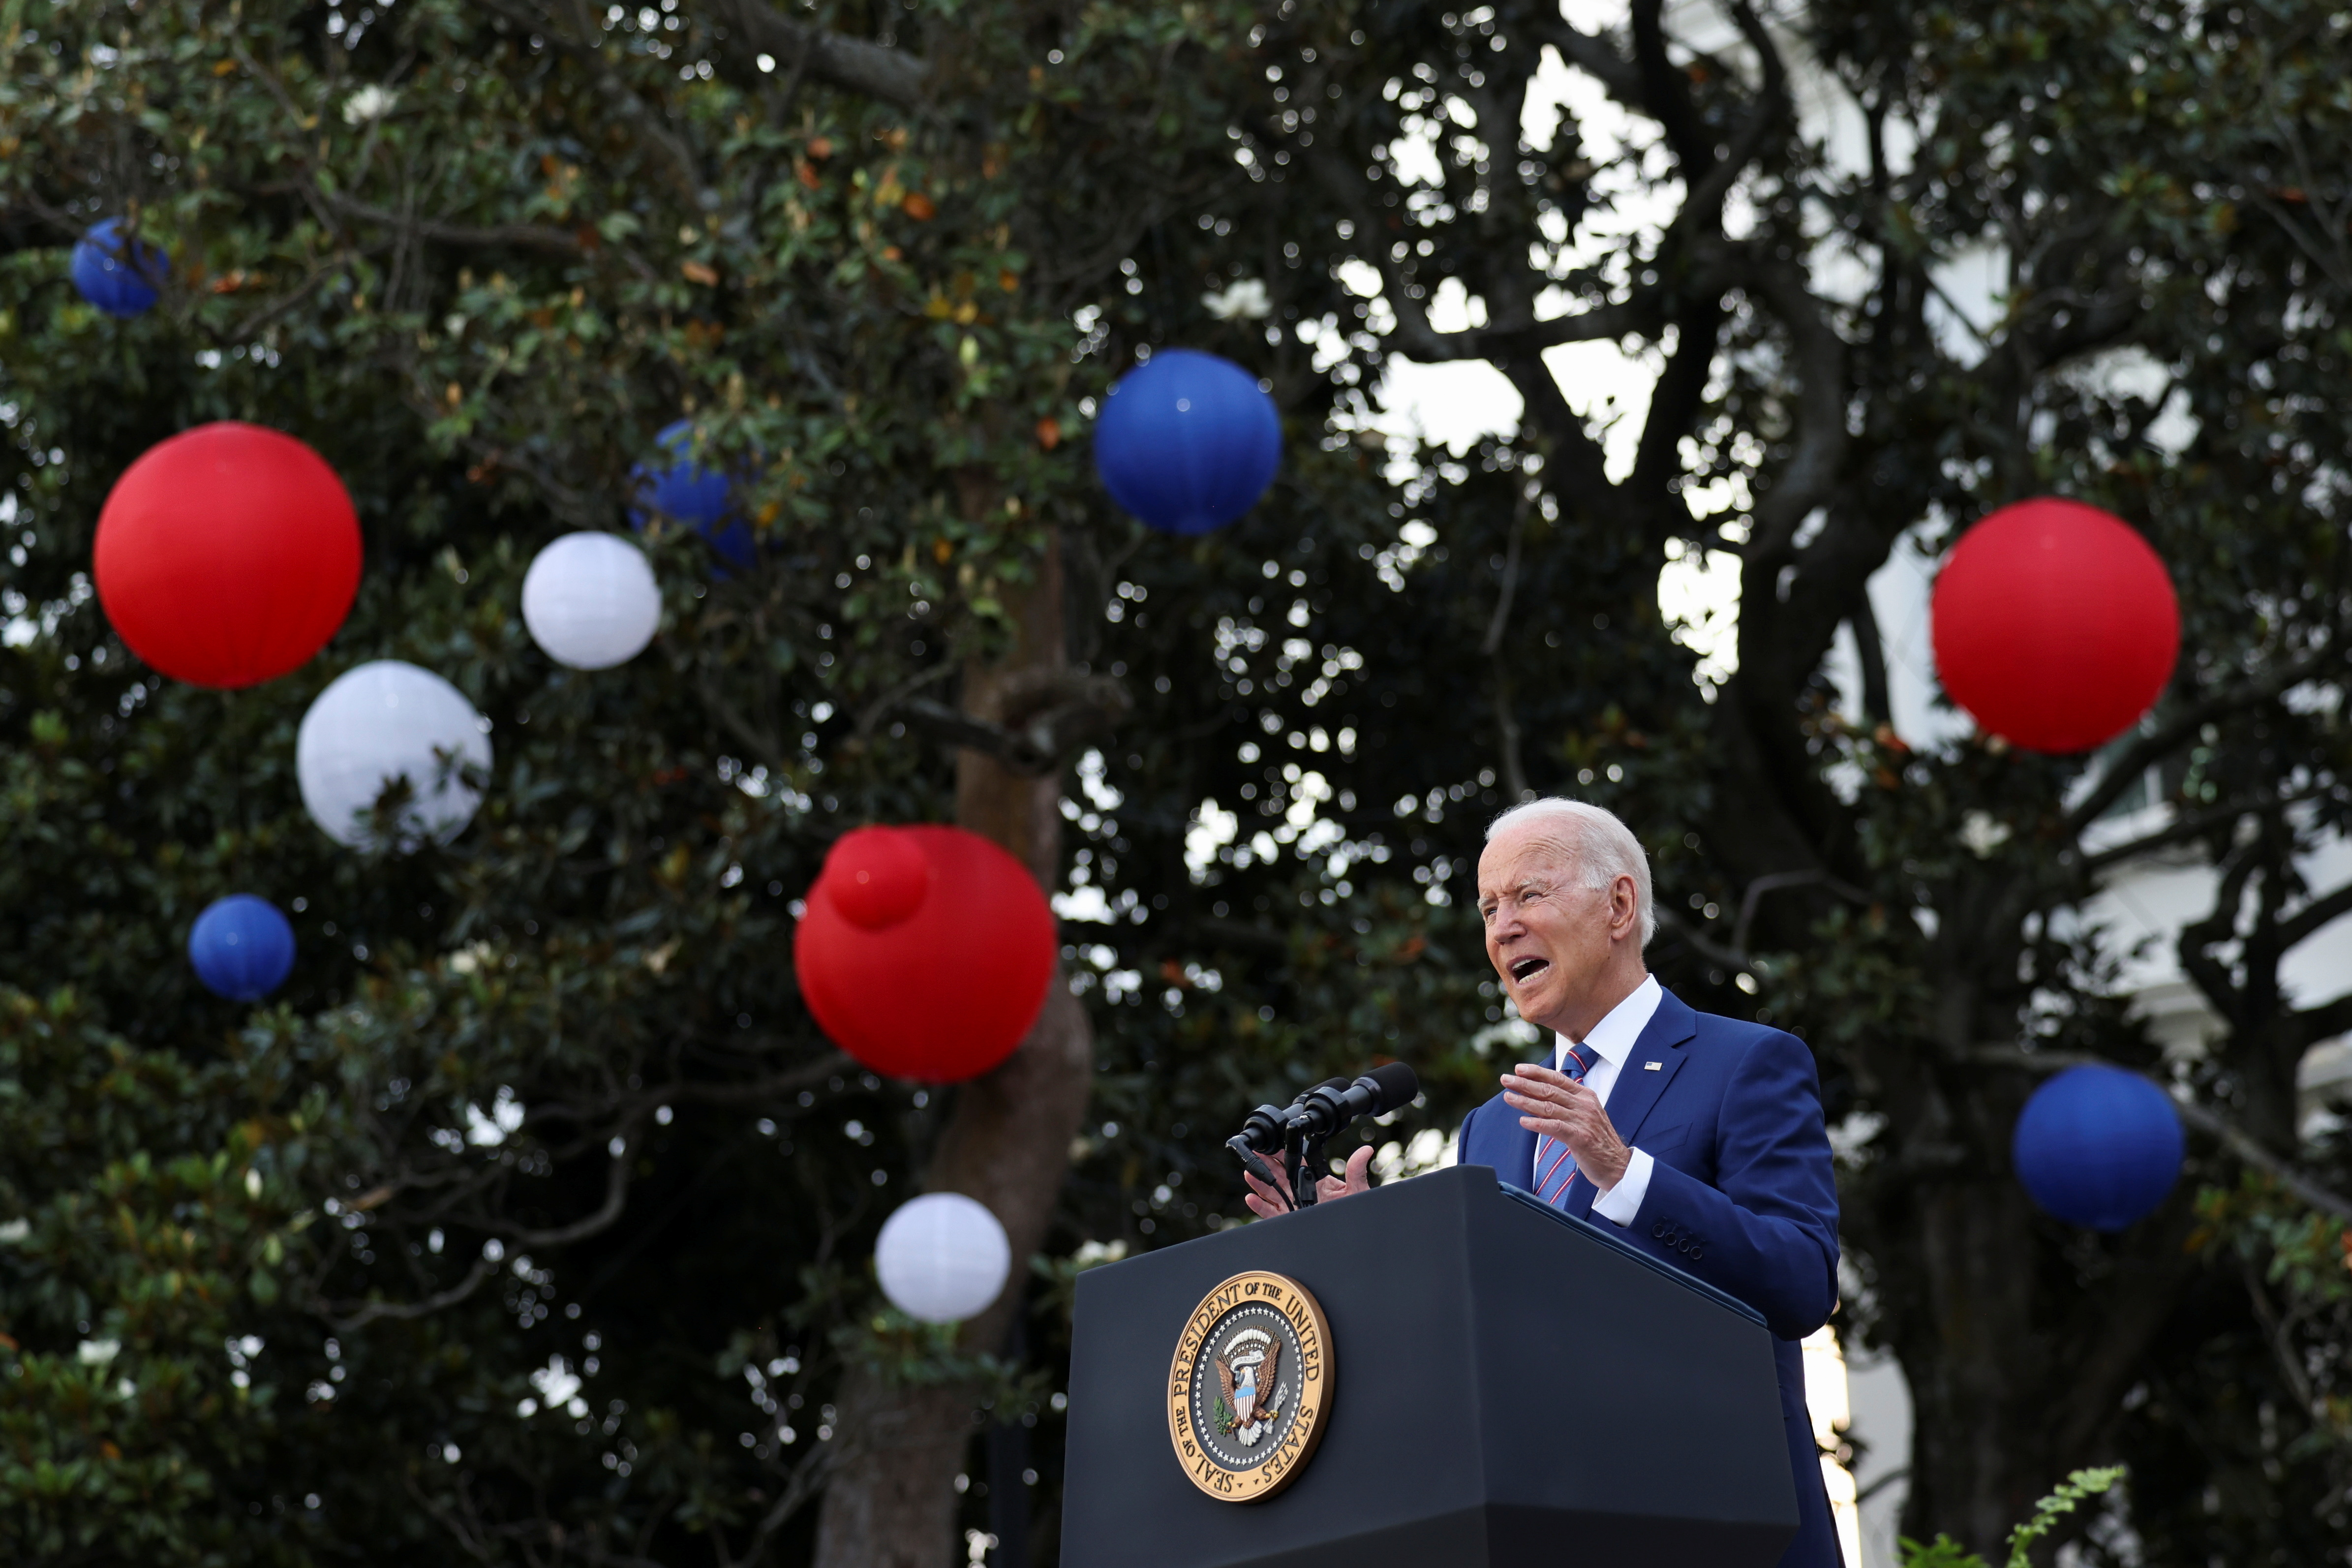 U.S. President Joe Biden delivers remarks at the White House at a celebration of Independence Day in Washington, U.S., July 4, 2021. REUTERS/Evelyn Hockstein